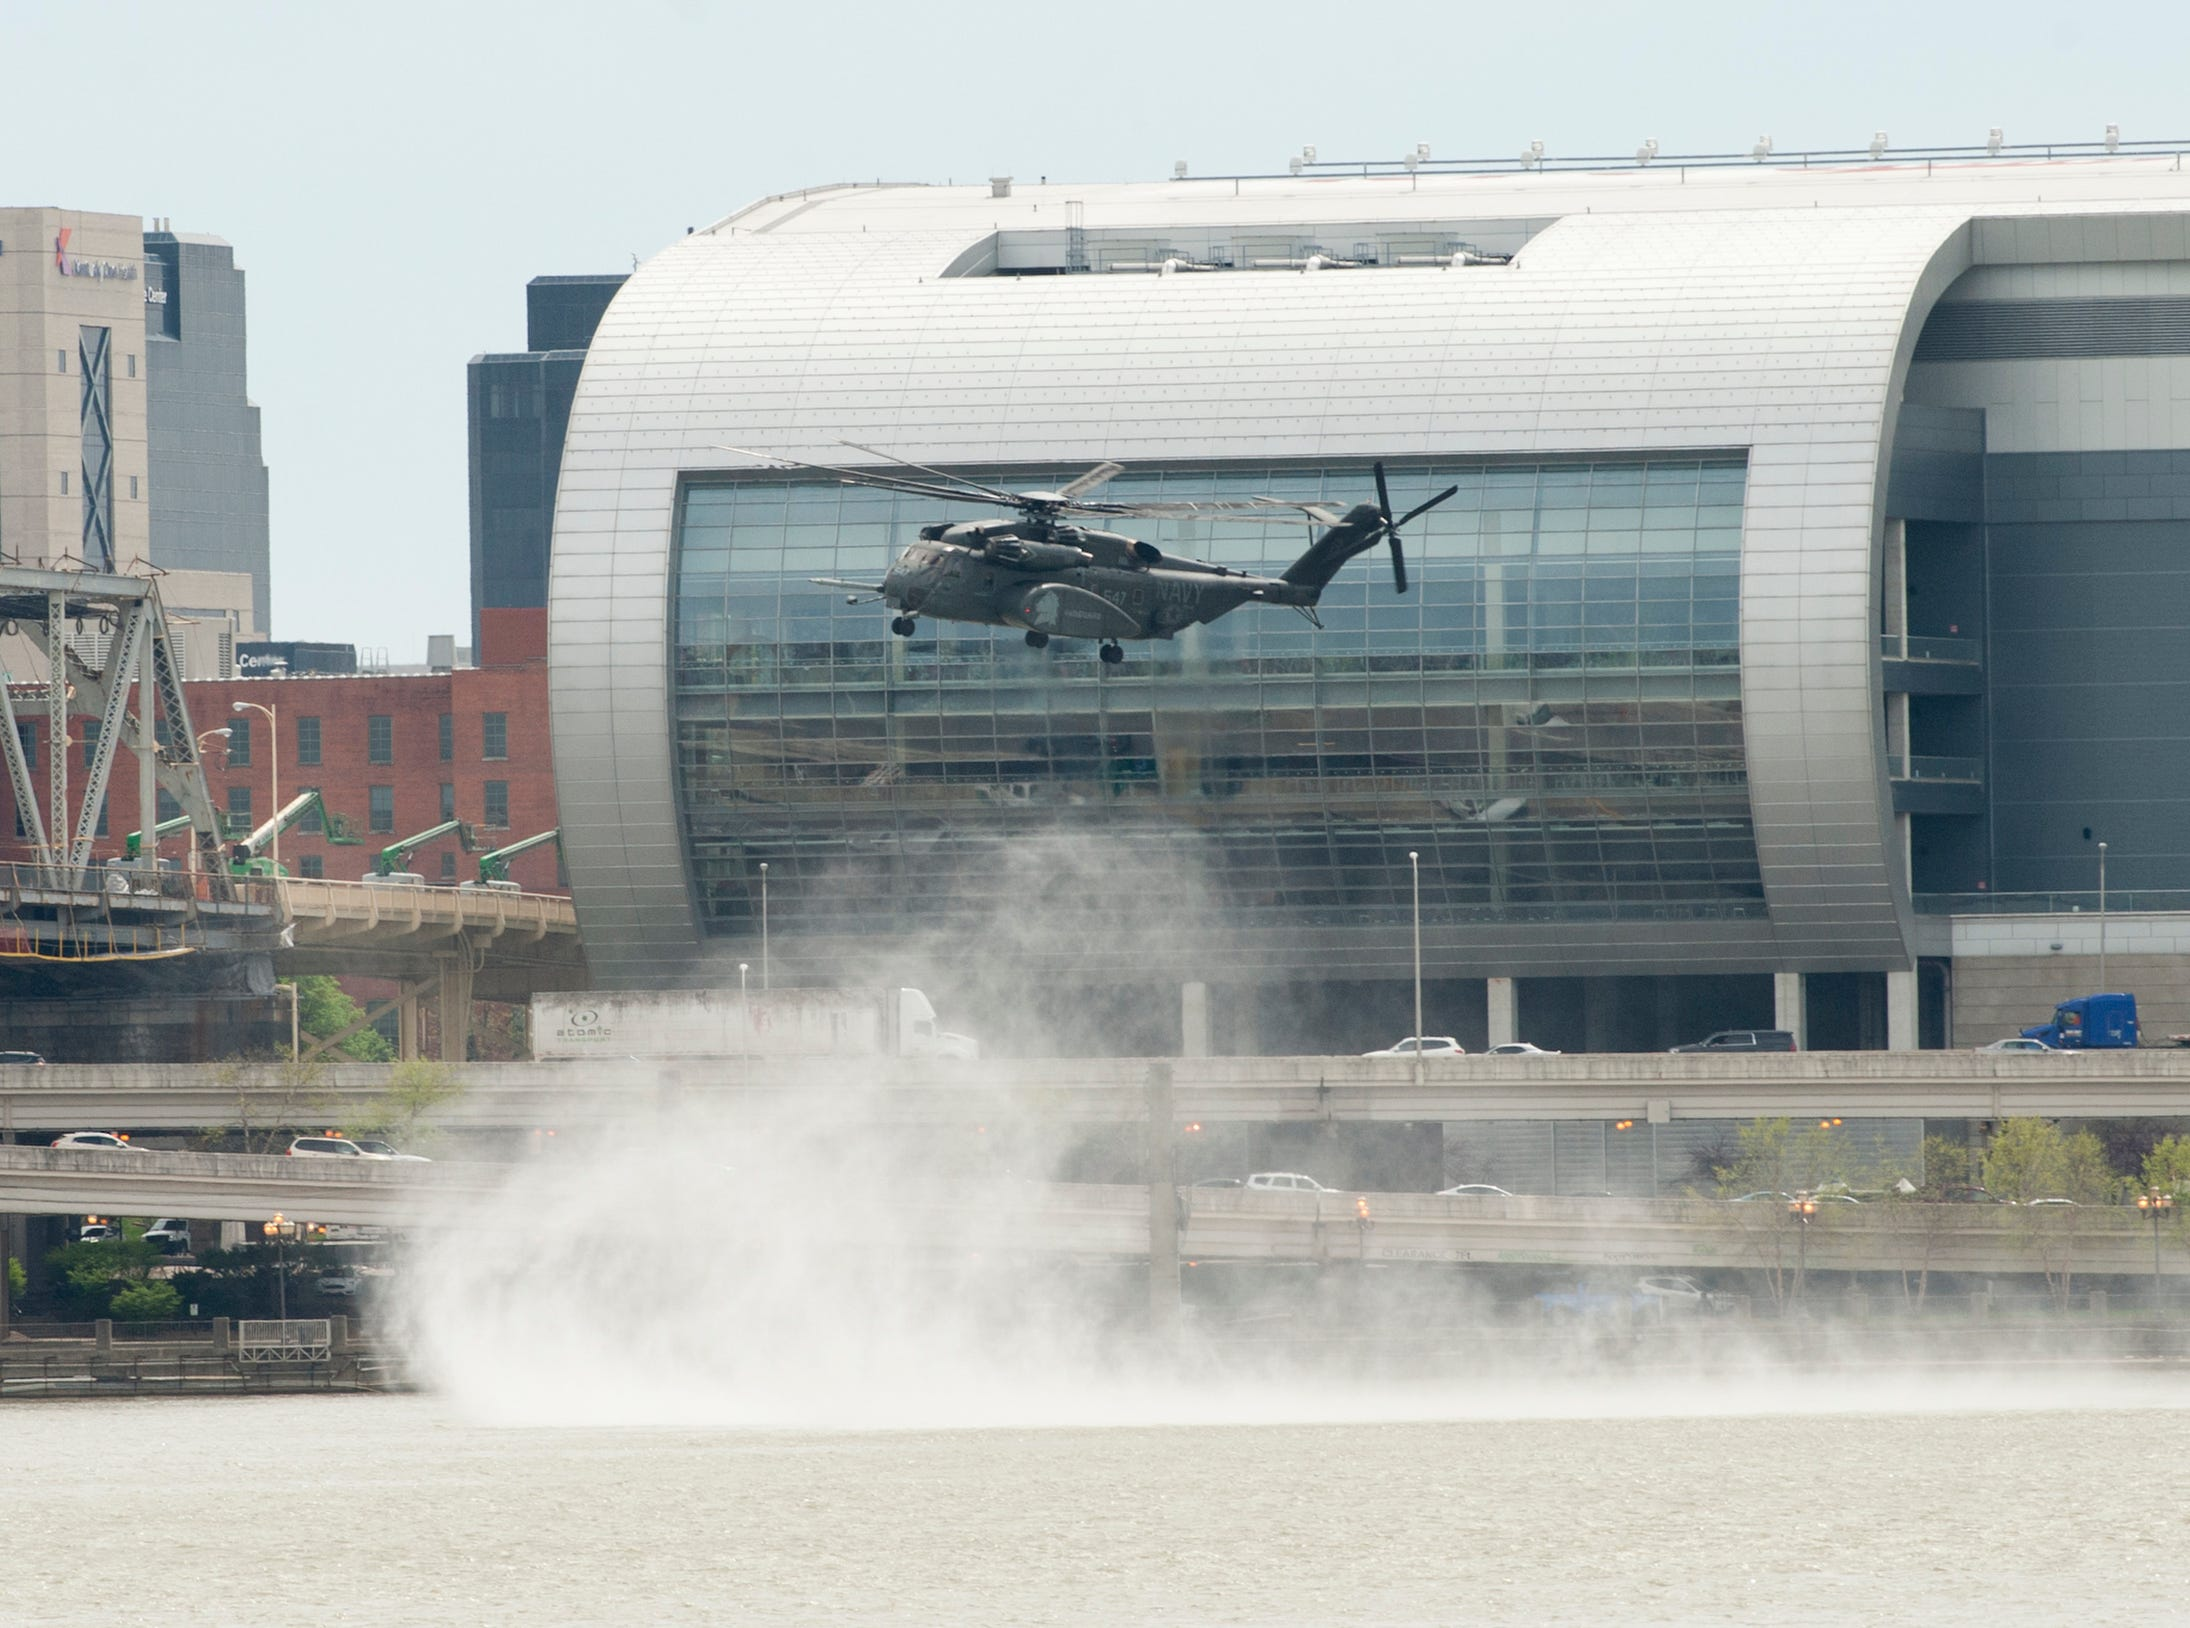 A U.S. Navy Vanguard helicopter hovers over the Second Street Bridge as it practices for the airshow. 12 April 2019